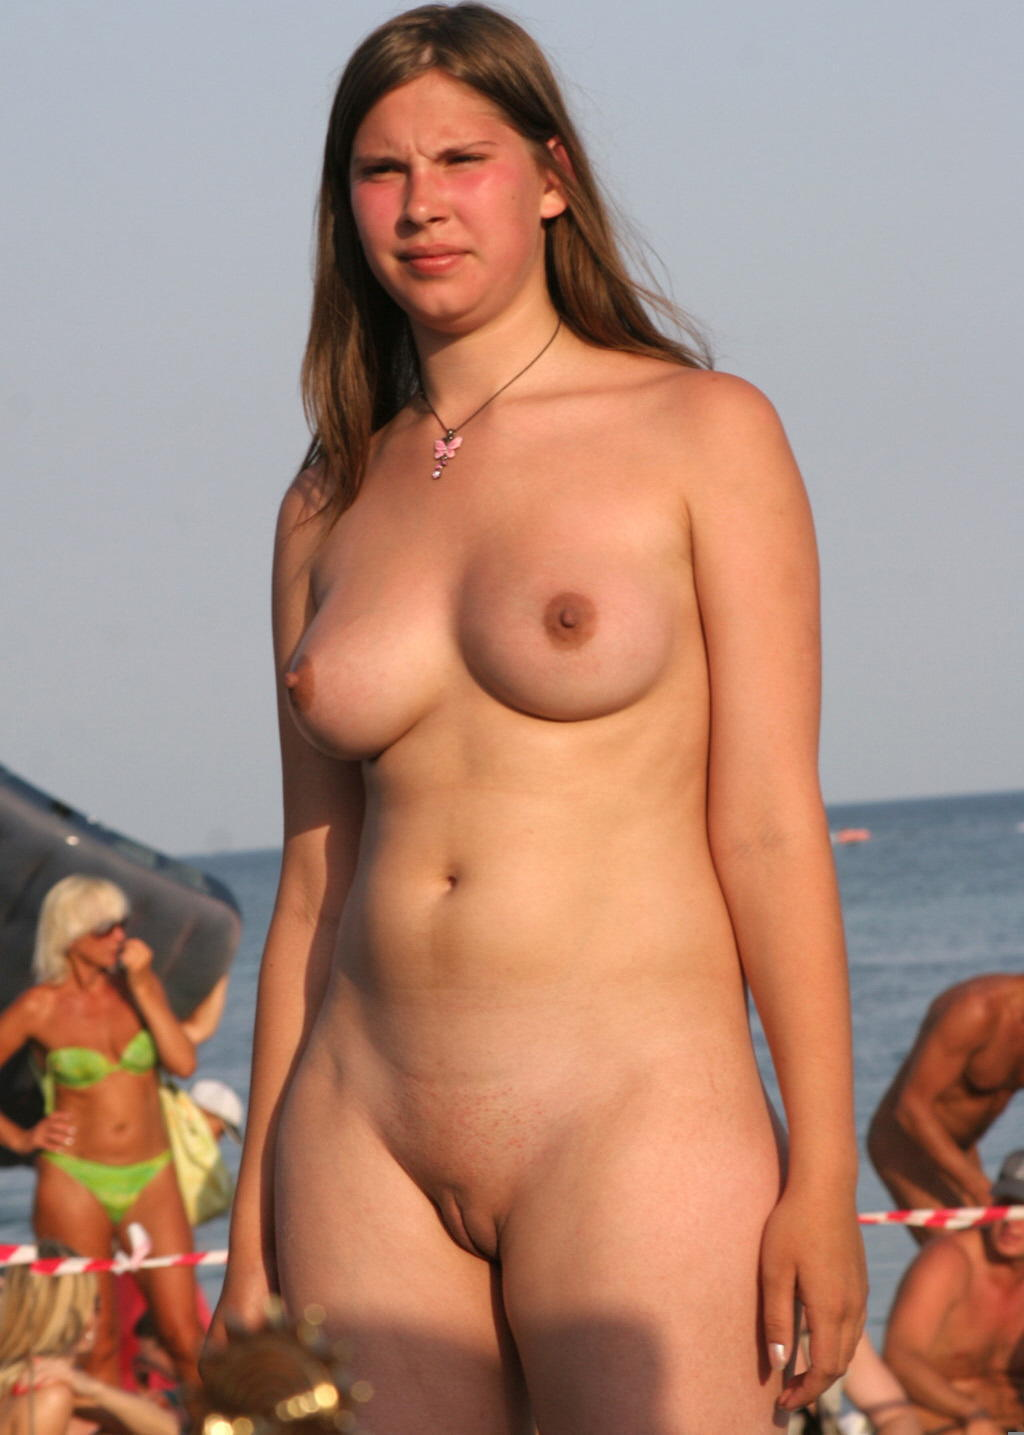 Chubby little mexican girl naked